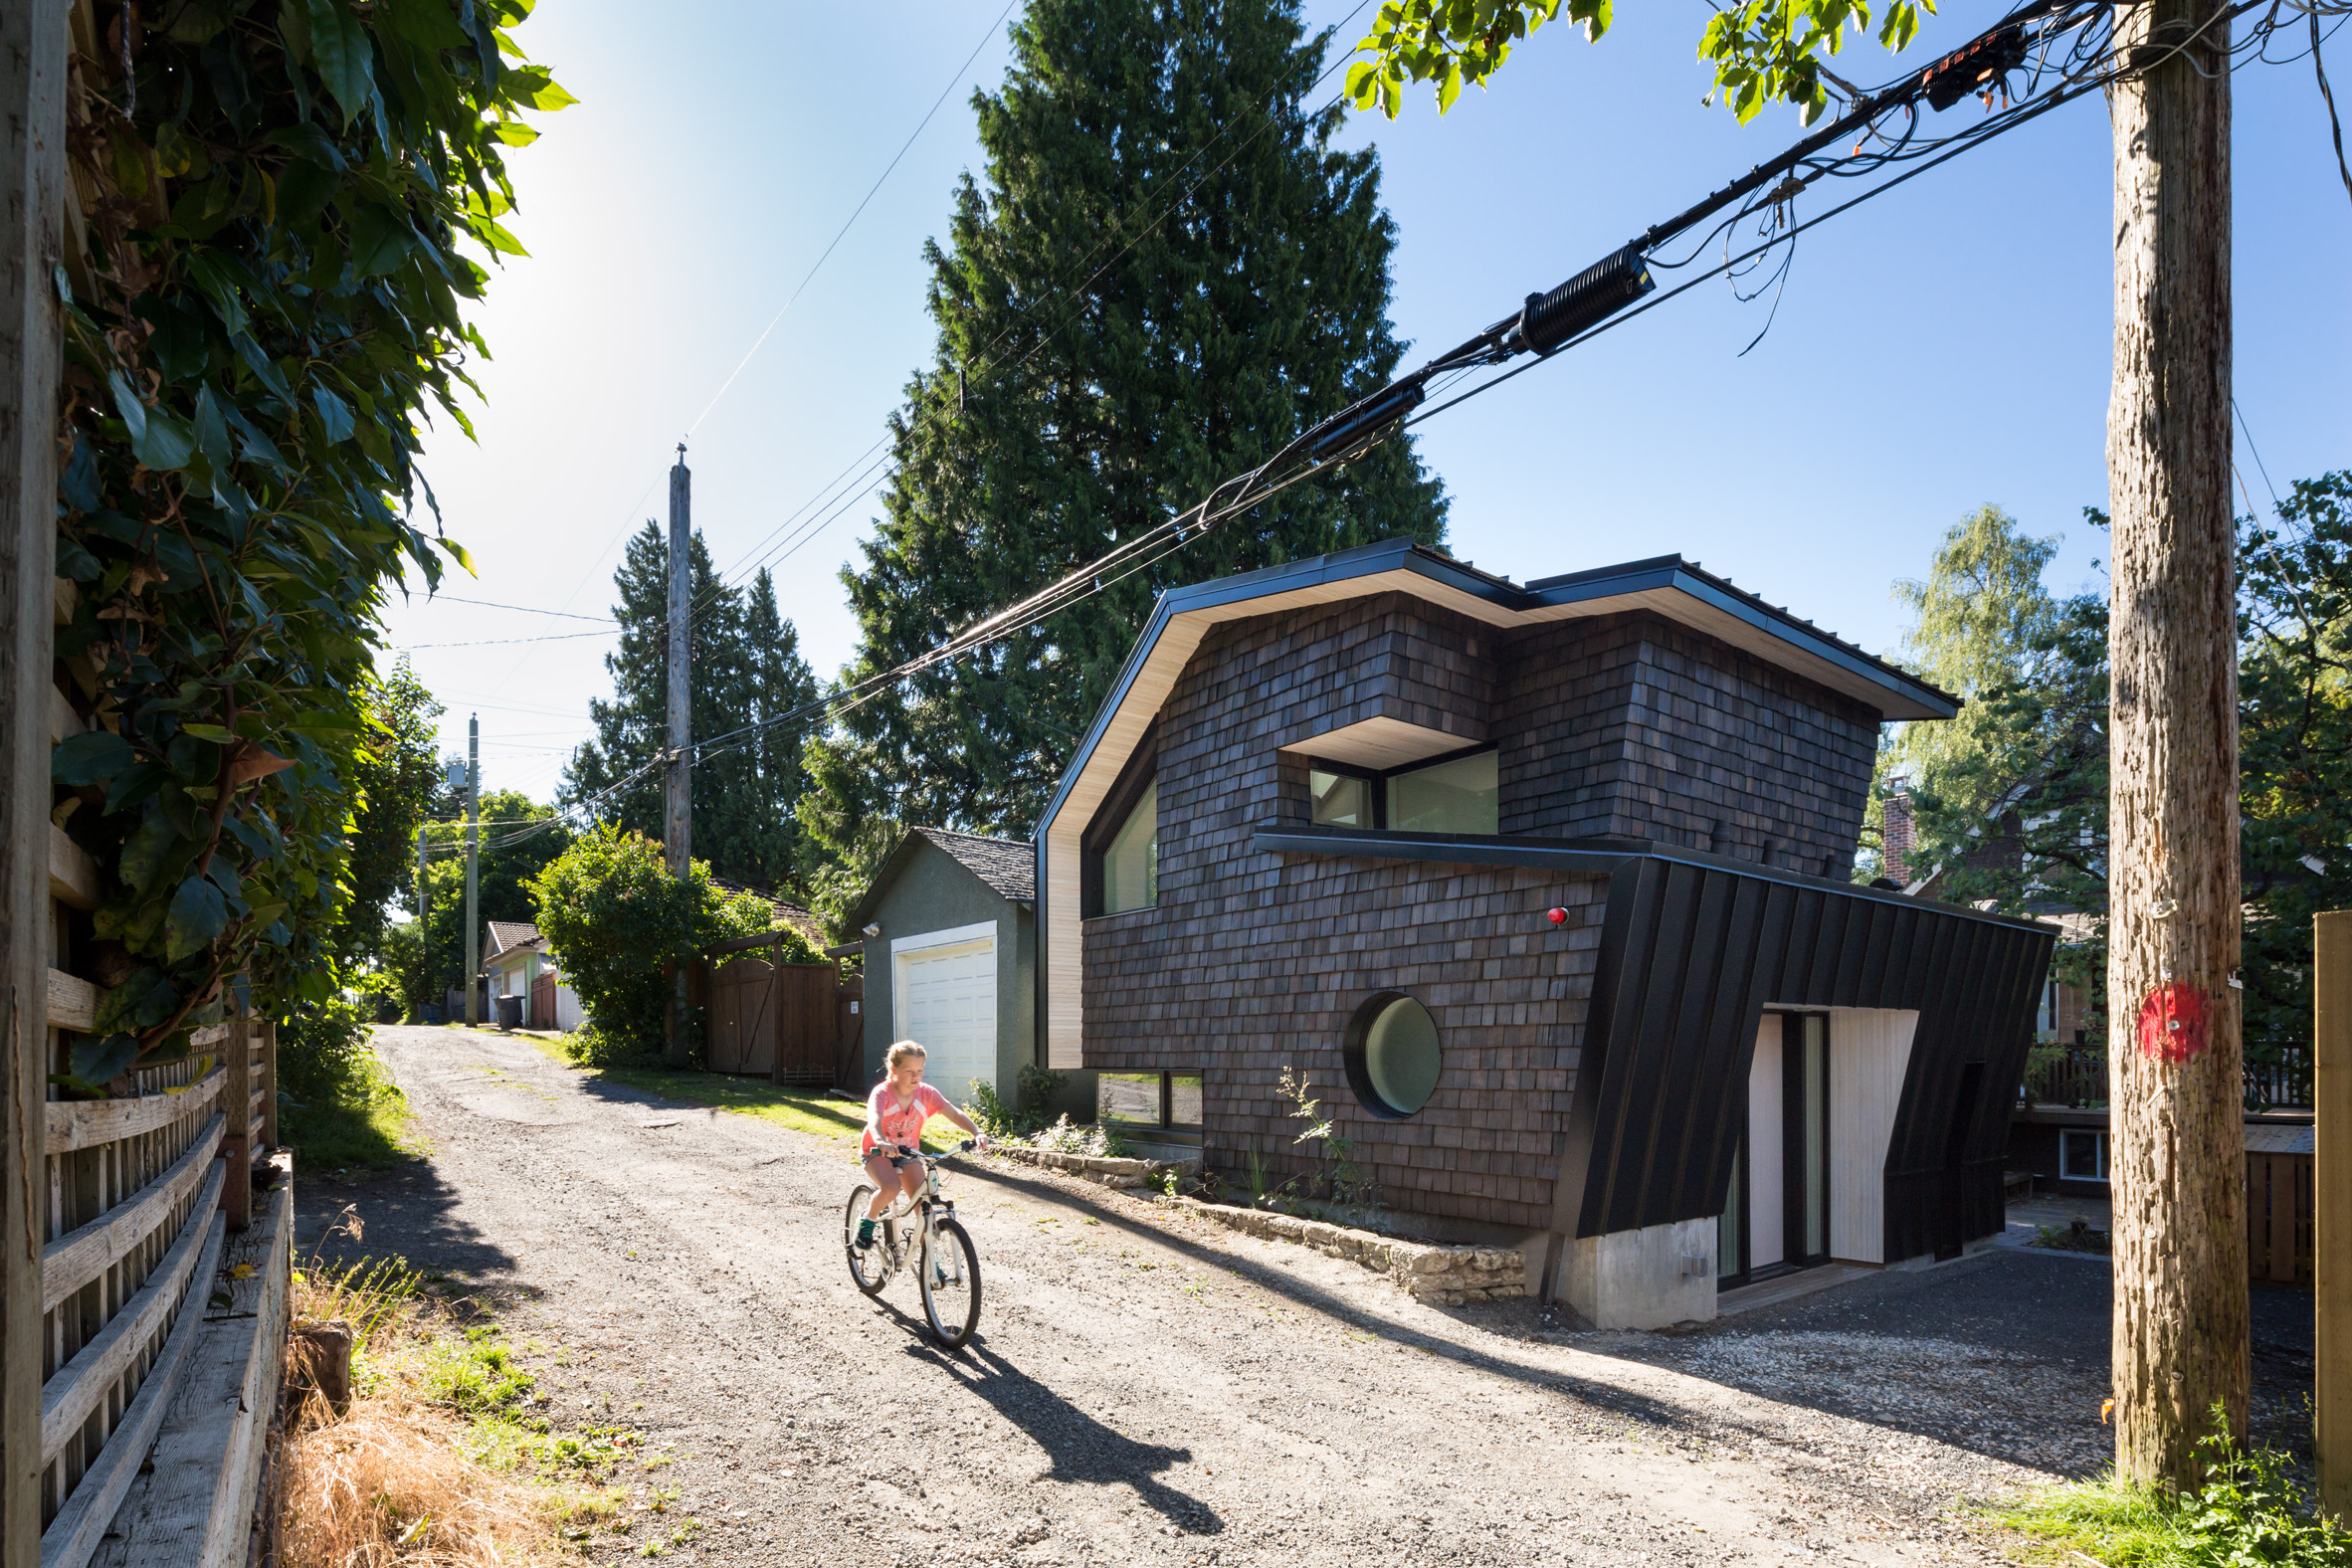 point-grey-laneway-campos-studio-residential-architecture-canada-vancouver_dezeen_2364_col_0.jpg